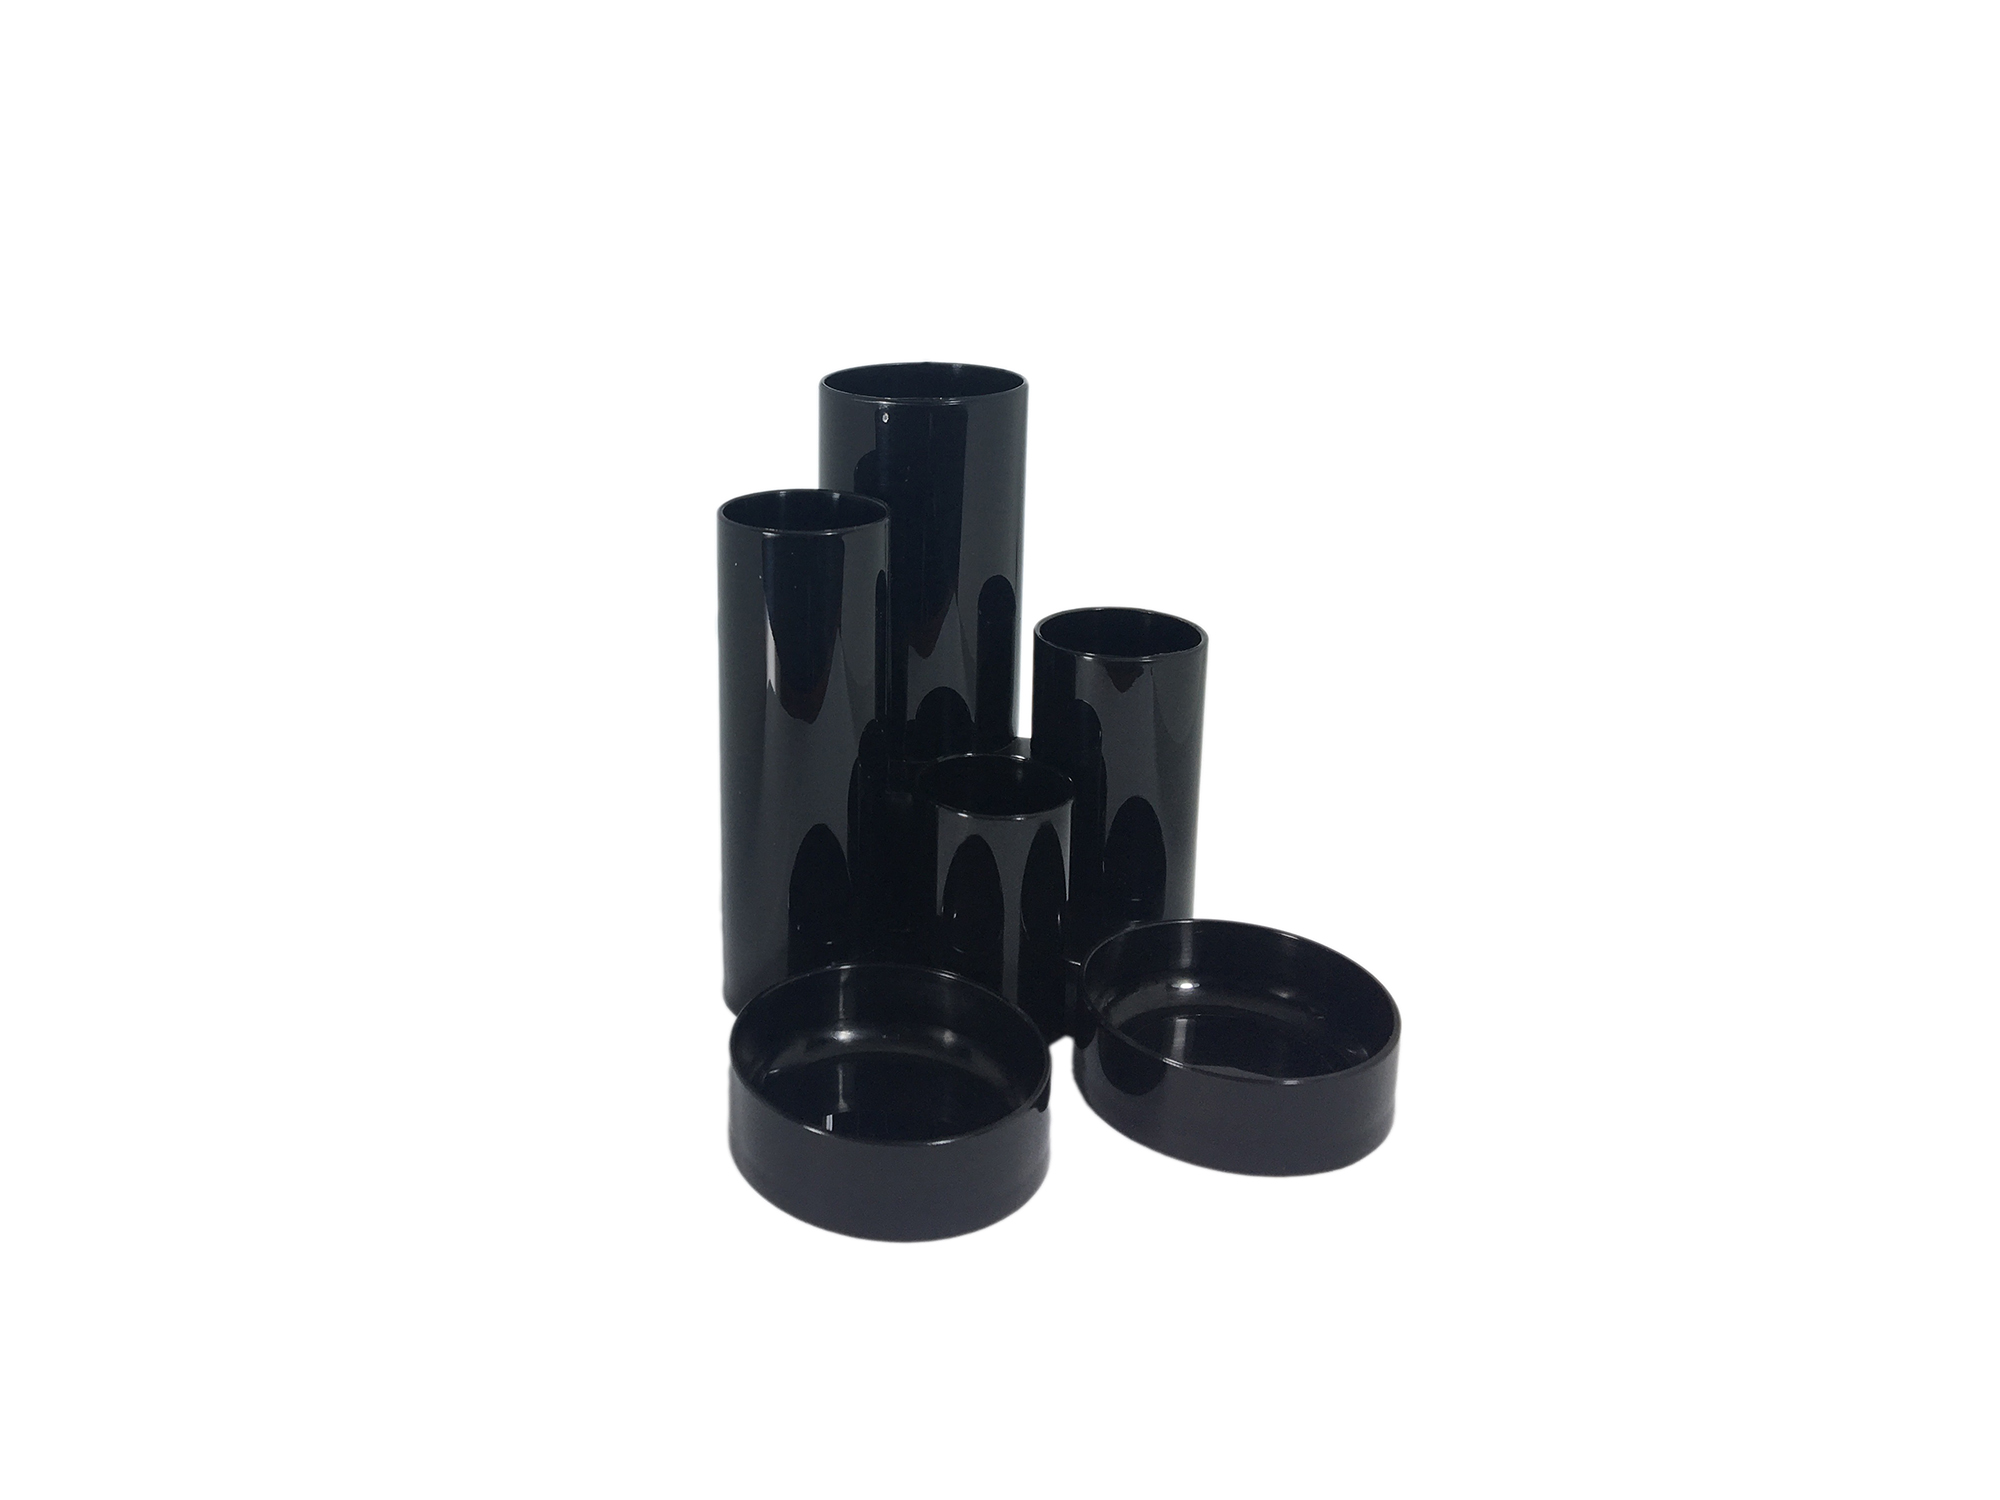 Desk Tidies ValueX Deflecto Tube Tidy Black